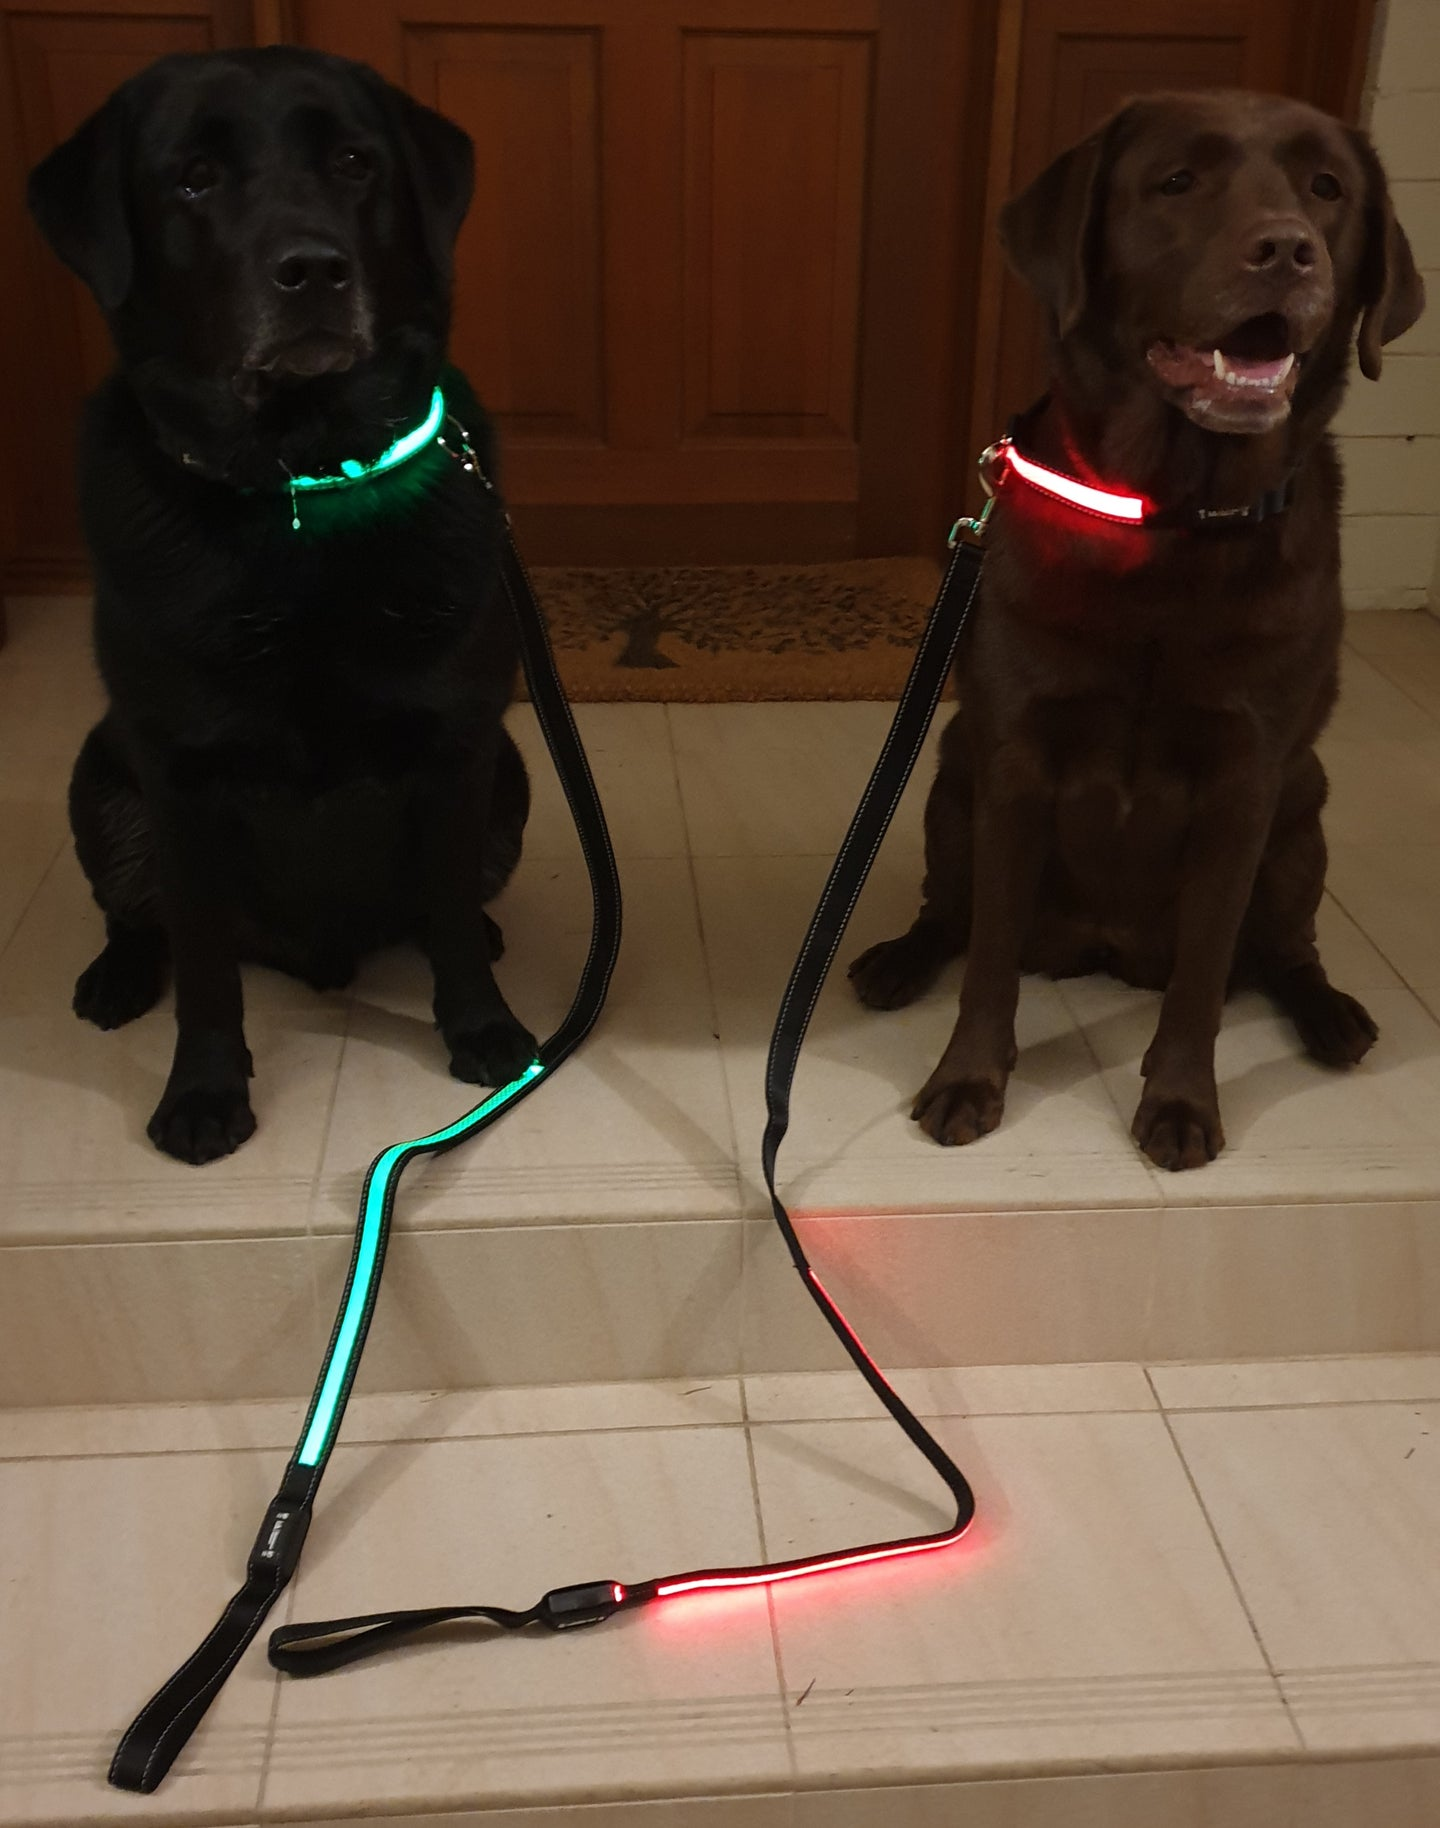 Illuminated Pets - Collars and Leads